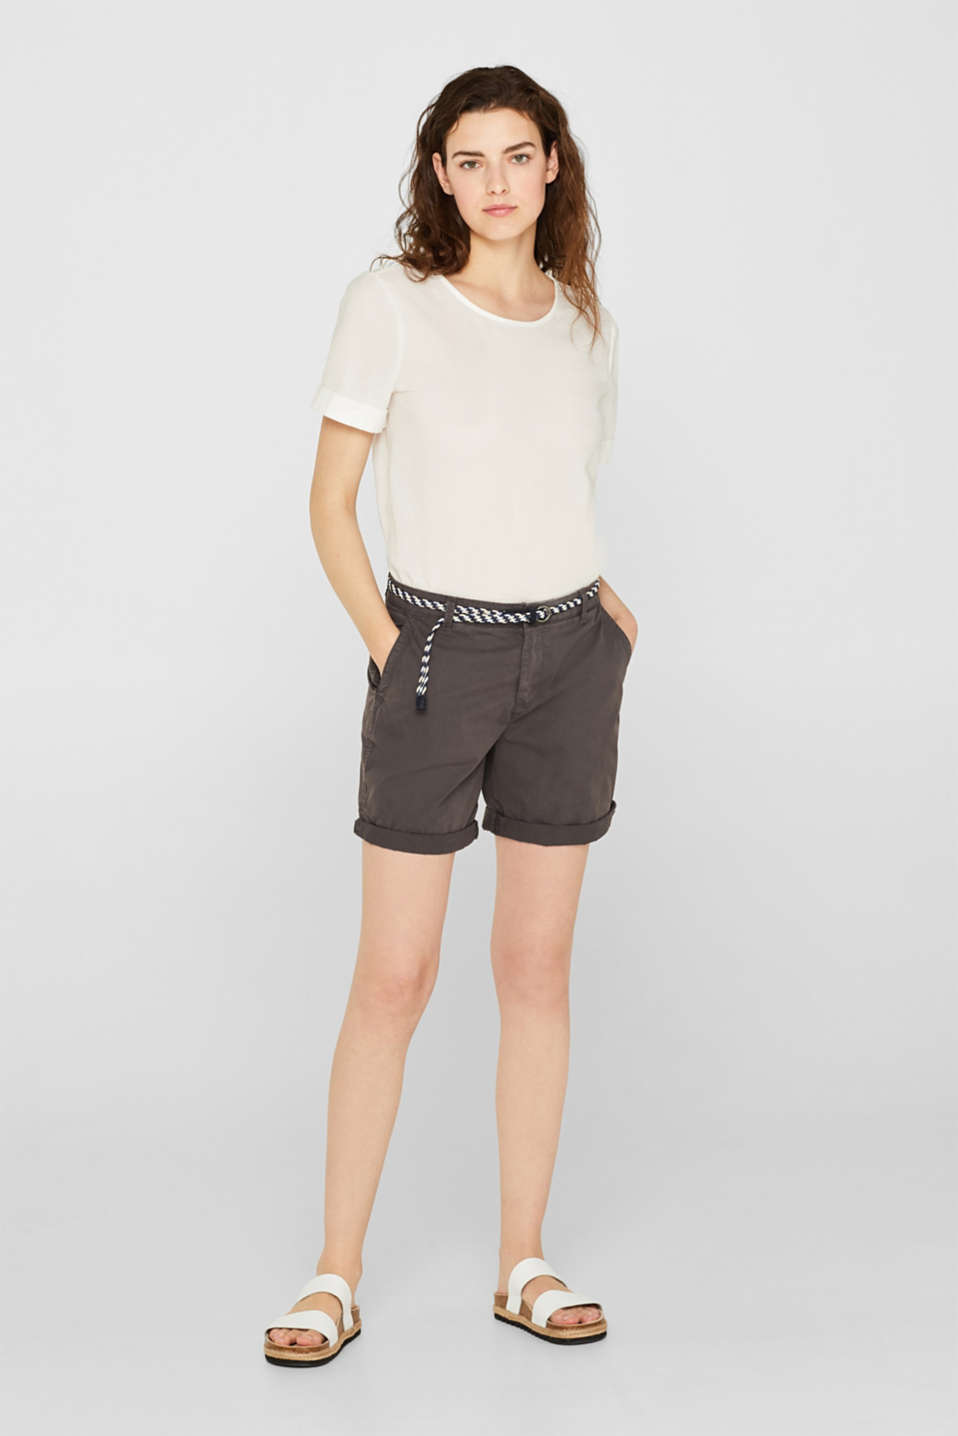 Shorts in a garment-washed look, 100% cotton, DARK GREY, detail image number 1